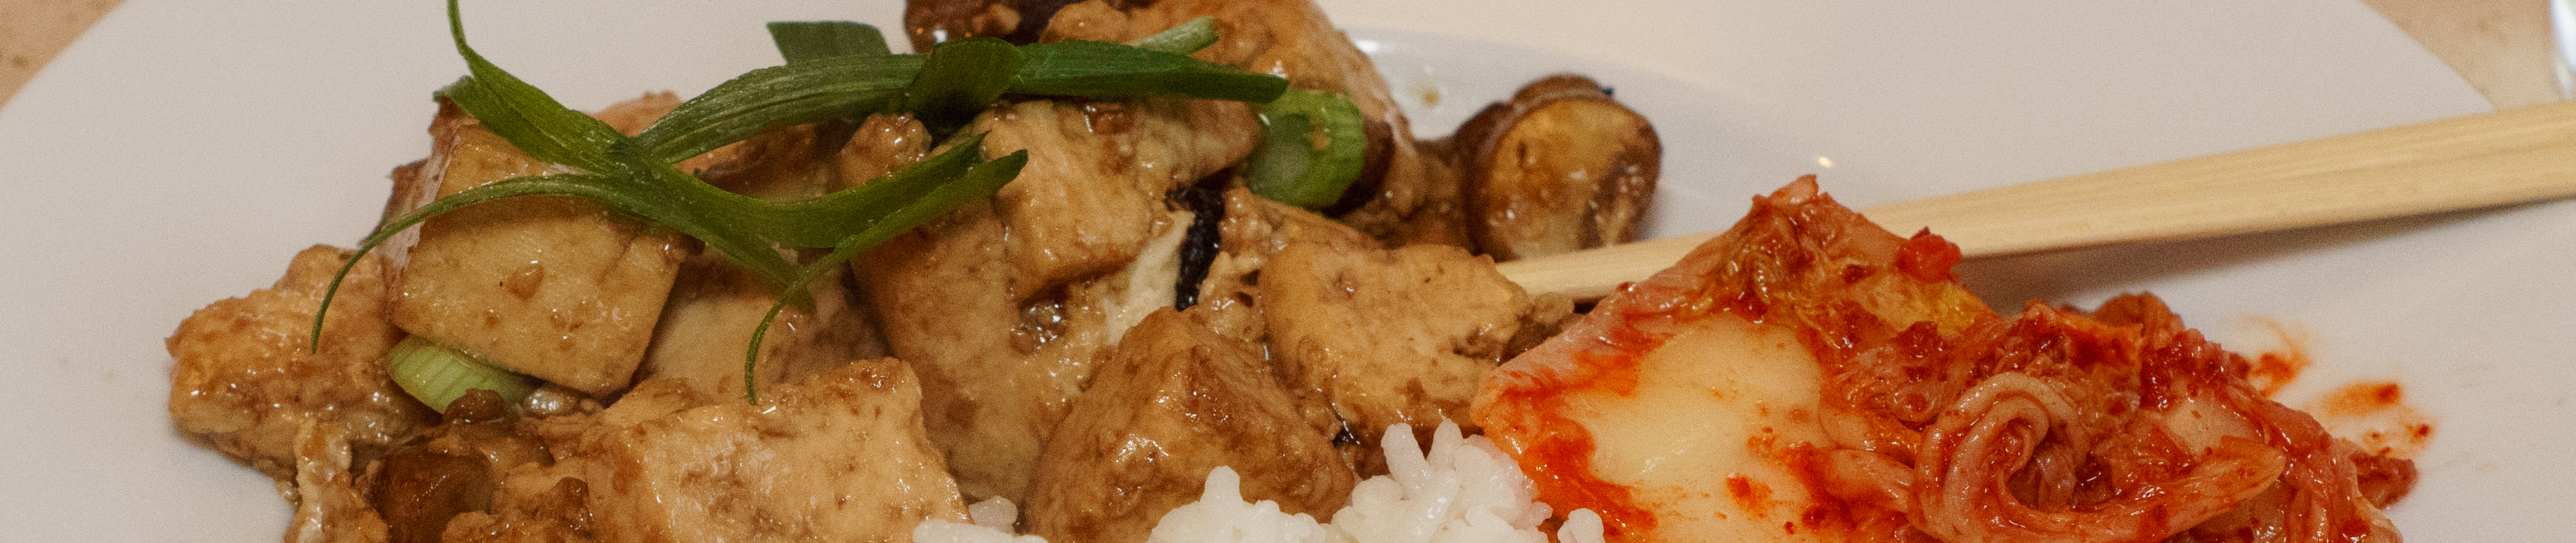 Bean Curd (Tofu) with Oyster Sauce banner photo